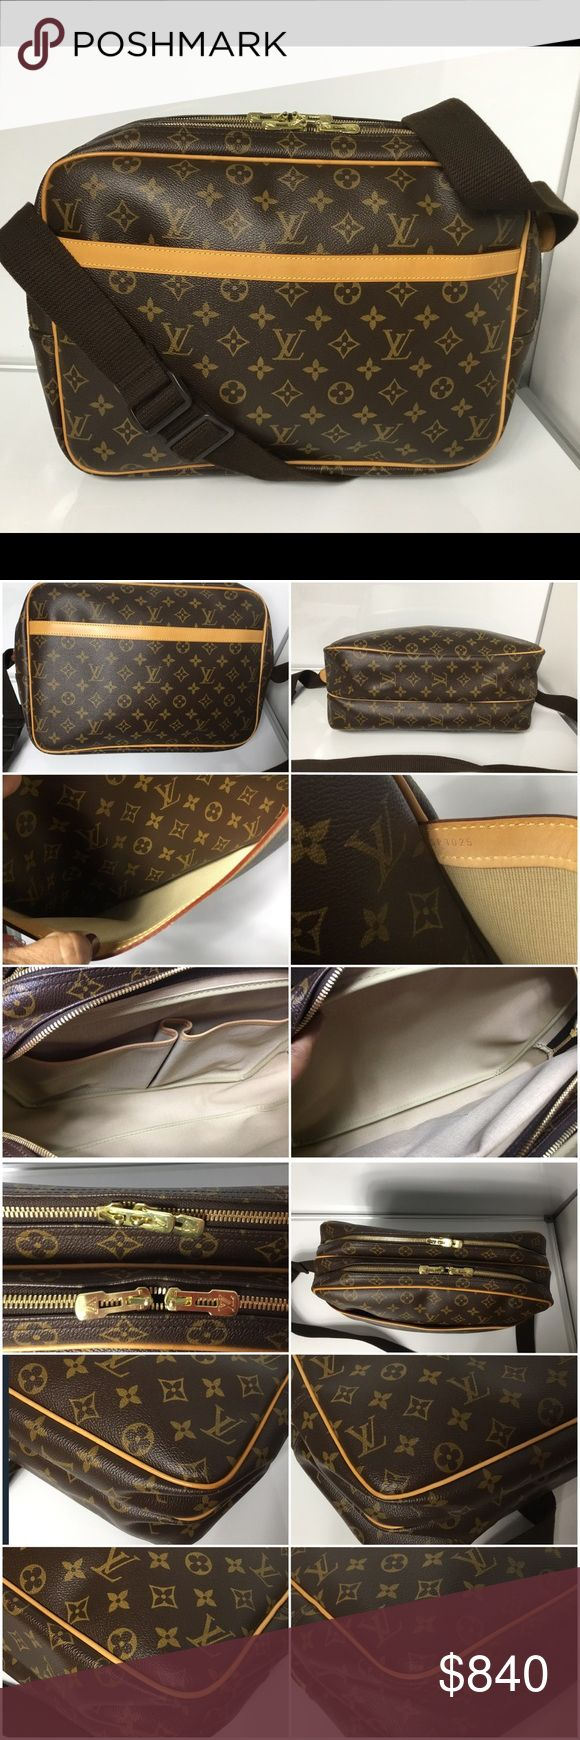 100% Authentic Louis Vuitton Monogram Reporter GM 100% Authentic Louis Vuitton Monogram Reporter GM with Dust Bag. Pre-Owned Bag in excellent Like new used condition. No rip, No tears, No stain on the canvas. Very clean inside. Strap has sign of used. Has initial stamped. MADE IN FRANCE DATE CODE SP1025 ( December 2005 )  Please check all the pictures. -In order to avoid unnecessary return. 100% authentic or your money back- no return sold as is- Louis Vuitton Bags Laptop Bags